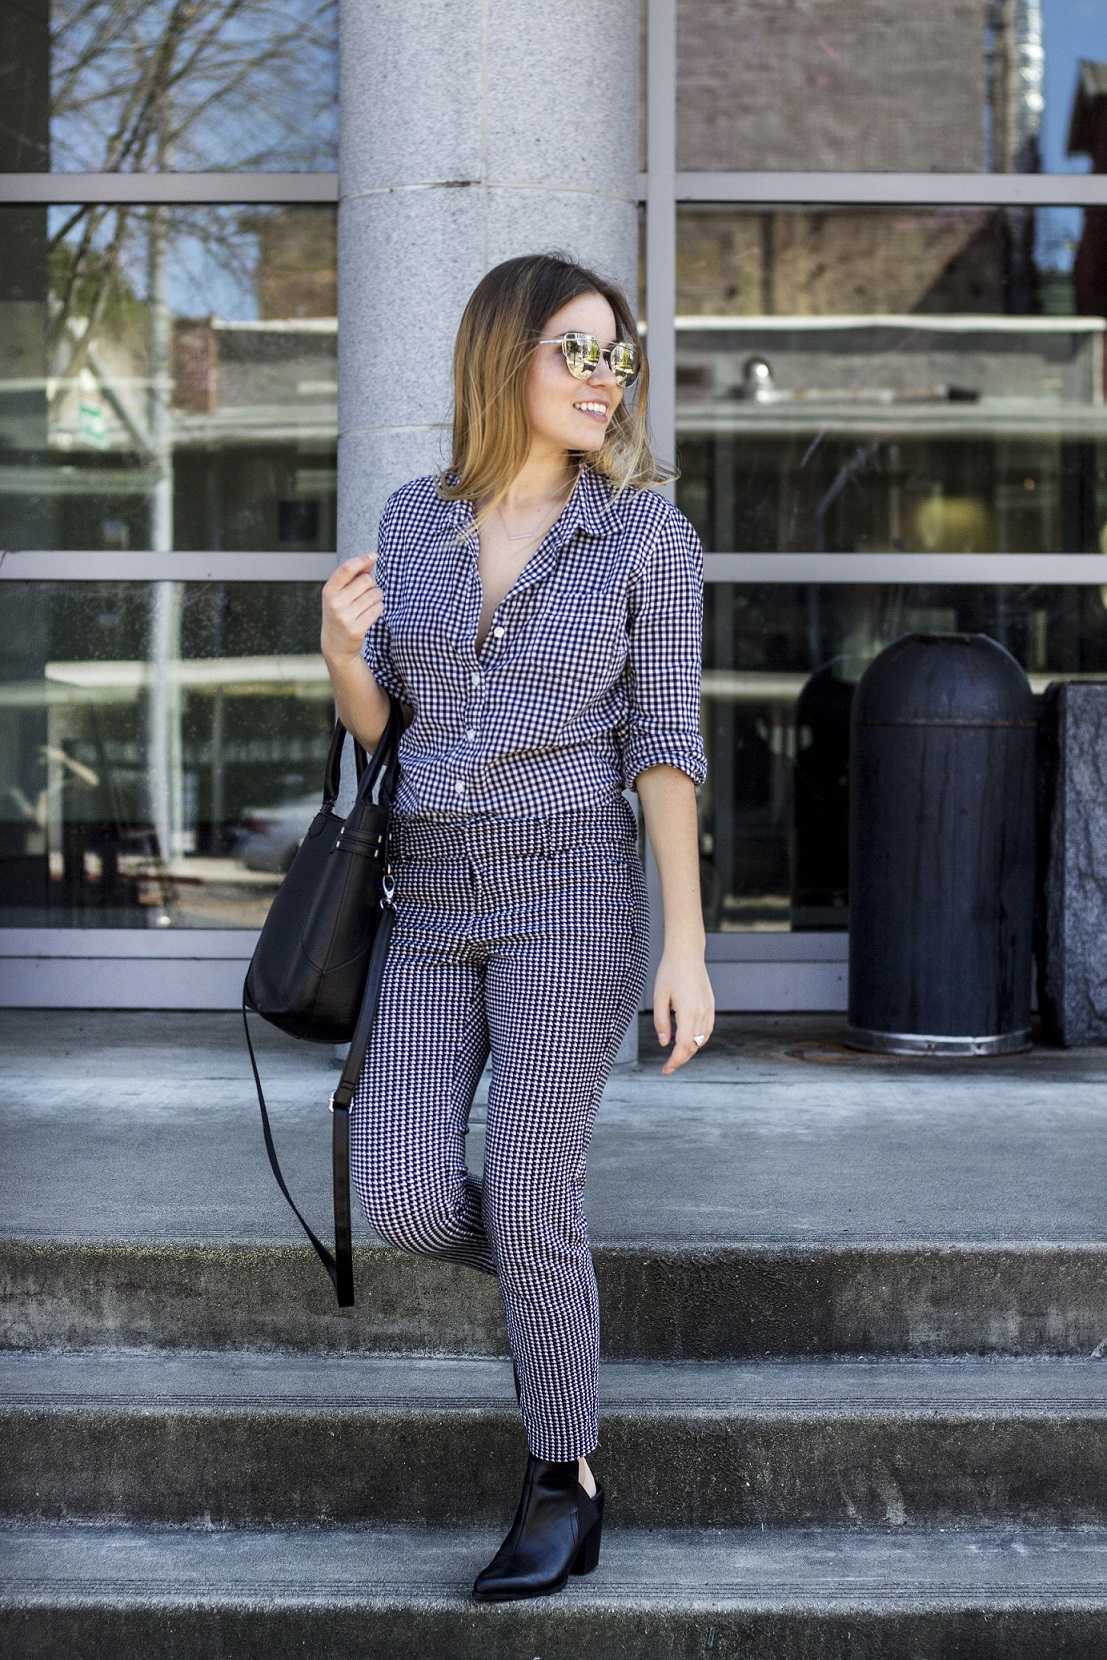 gingham on gingham work outift